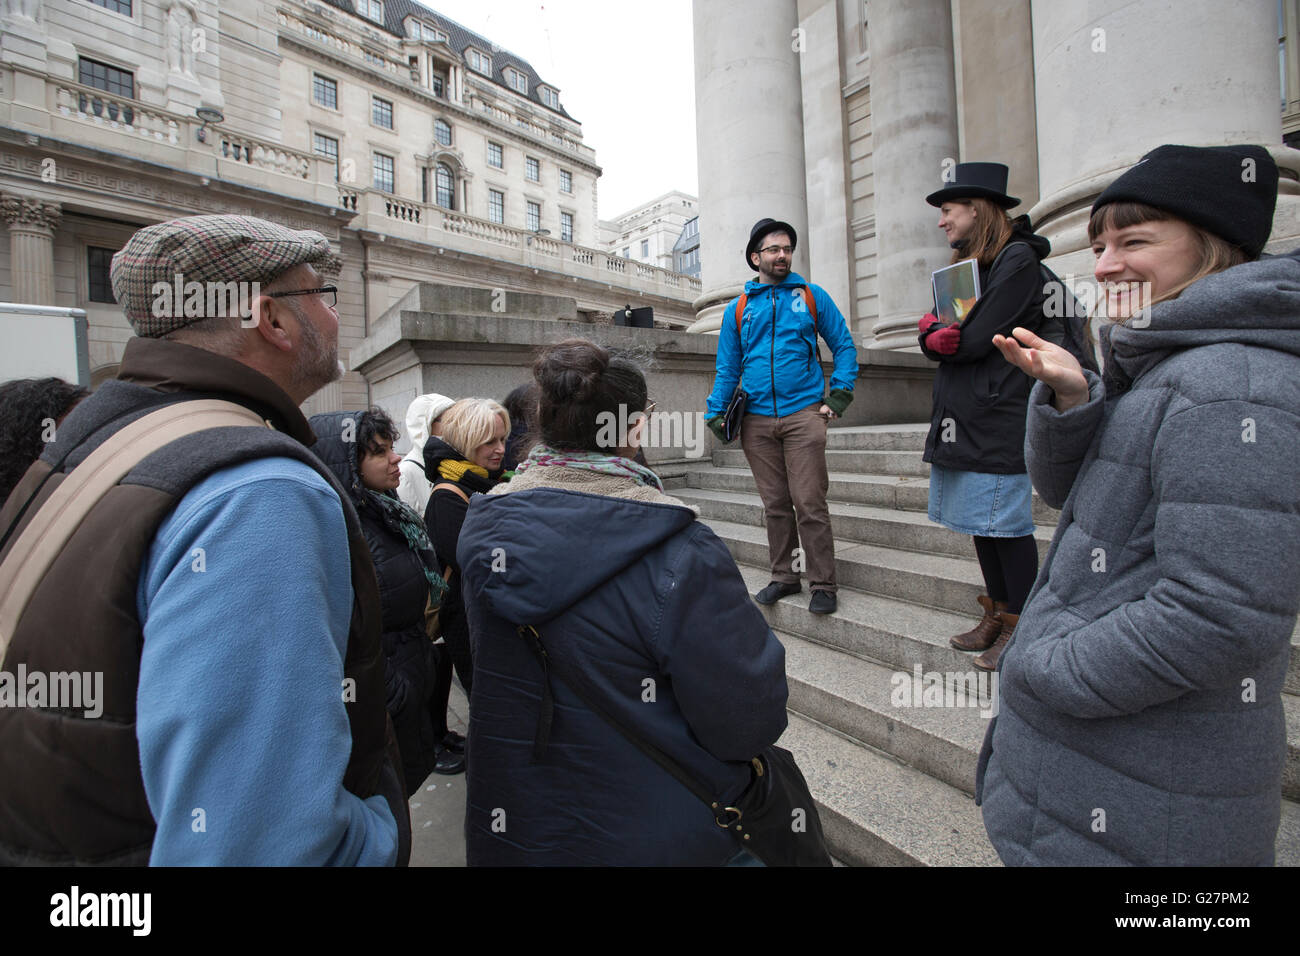 Occupy London's city walking tour through the heart of City of London's financial institutions, London, - Stock Image